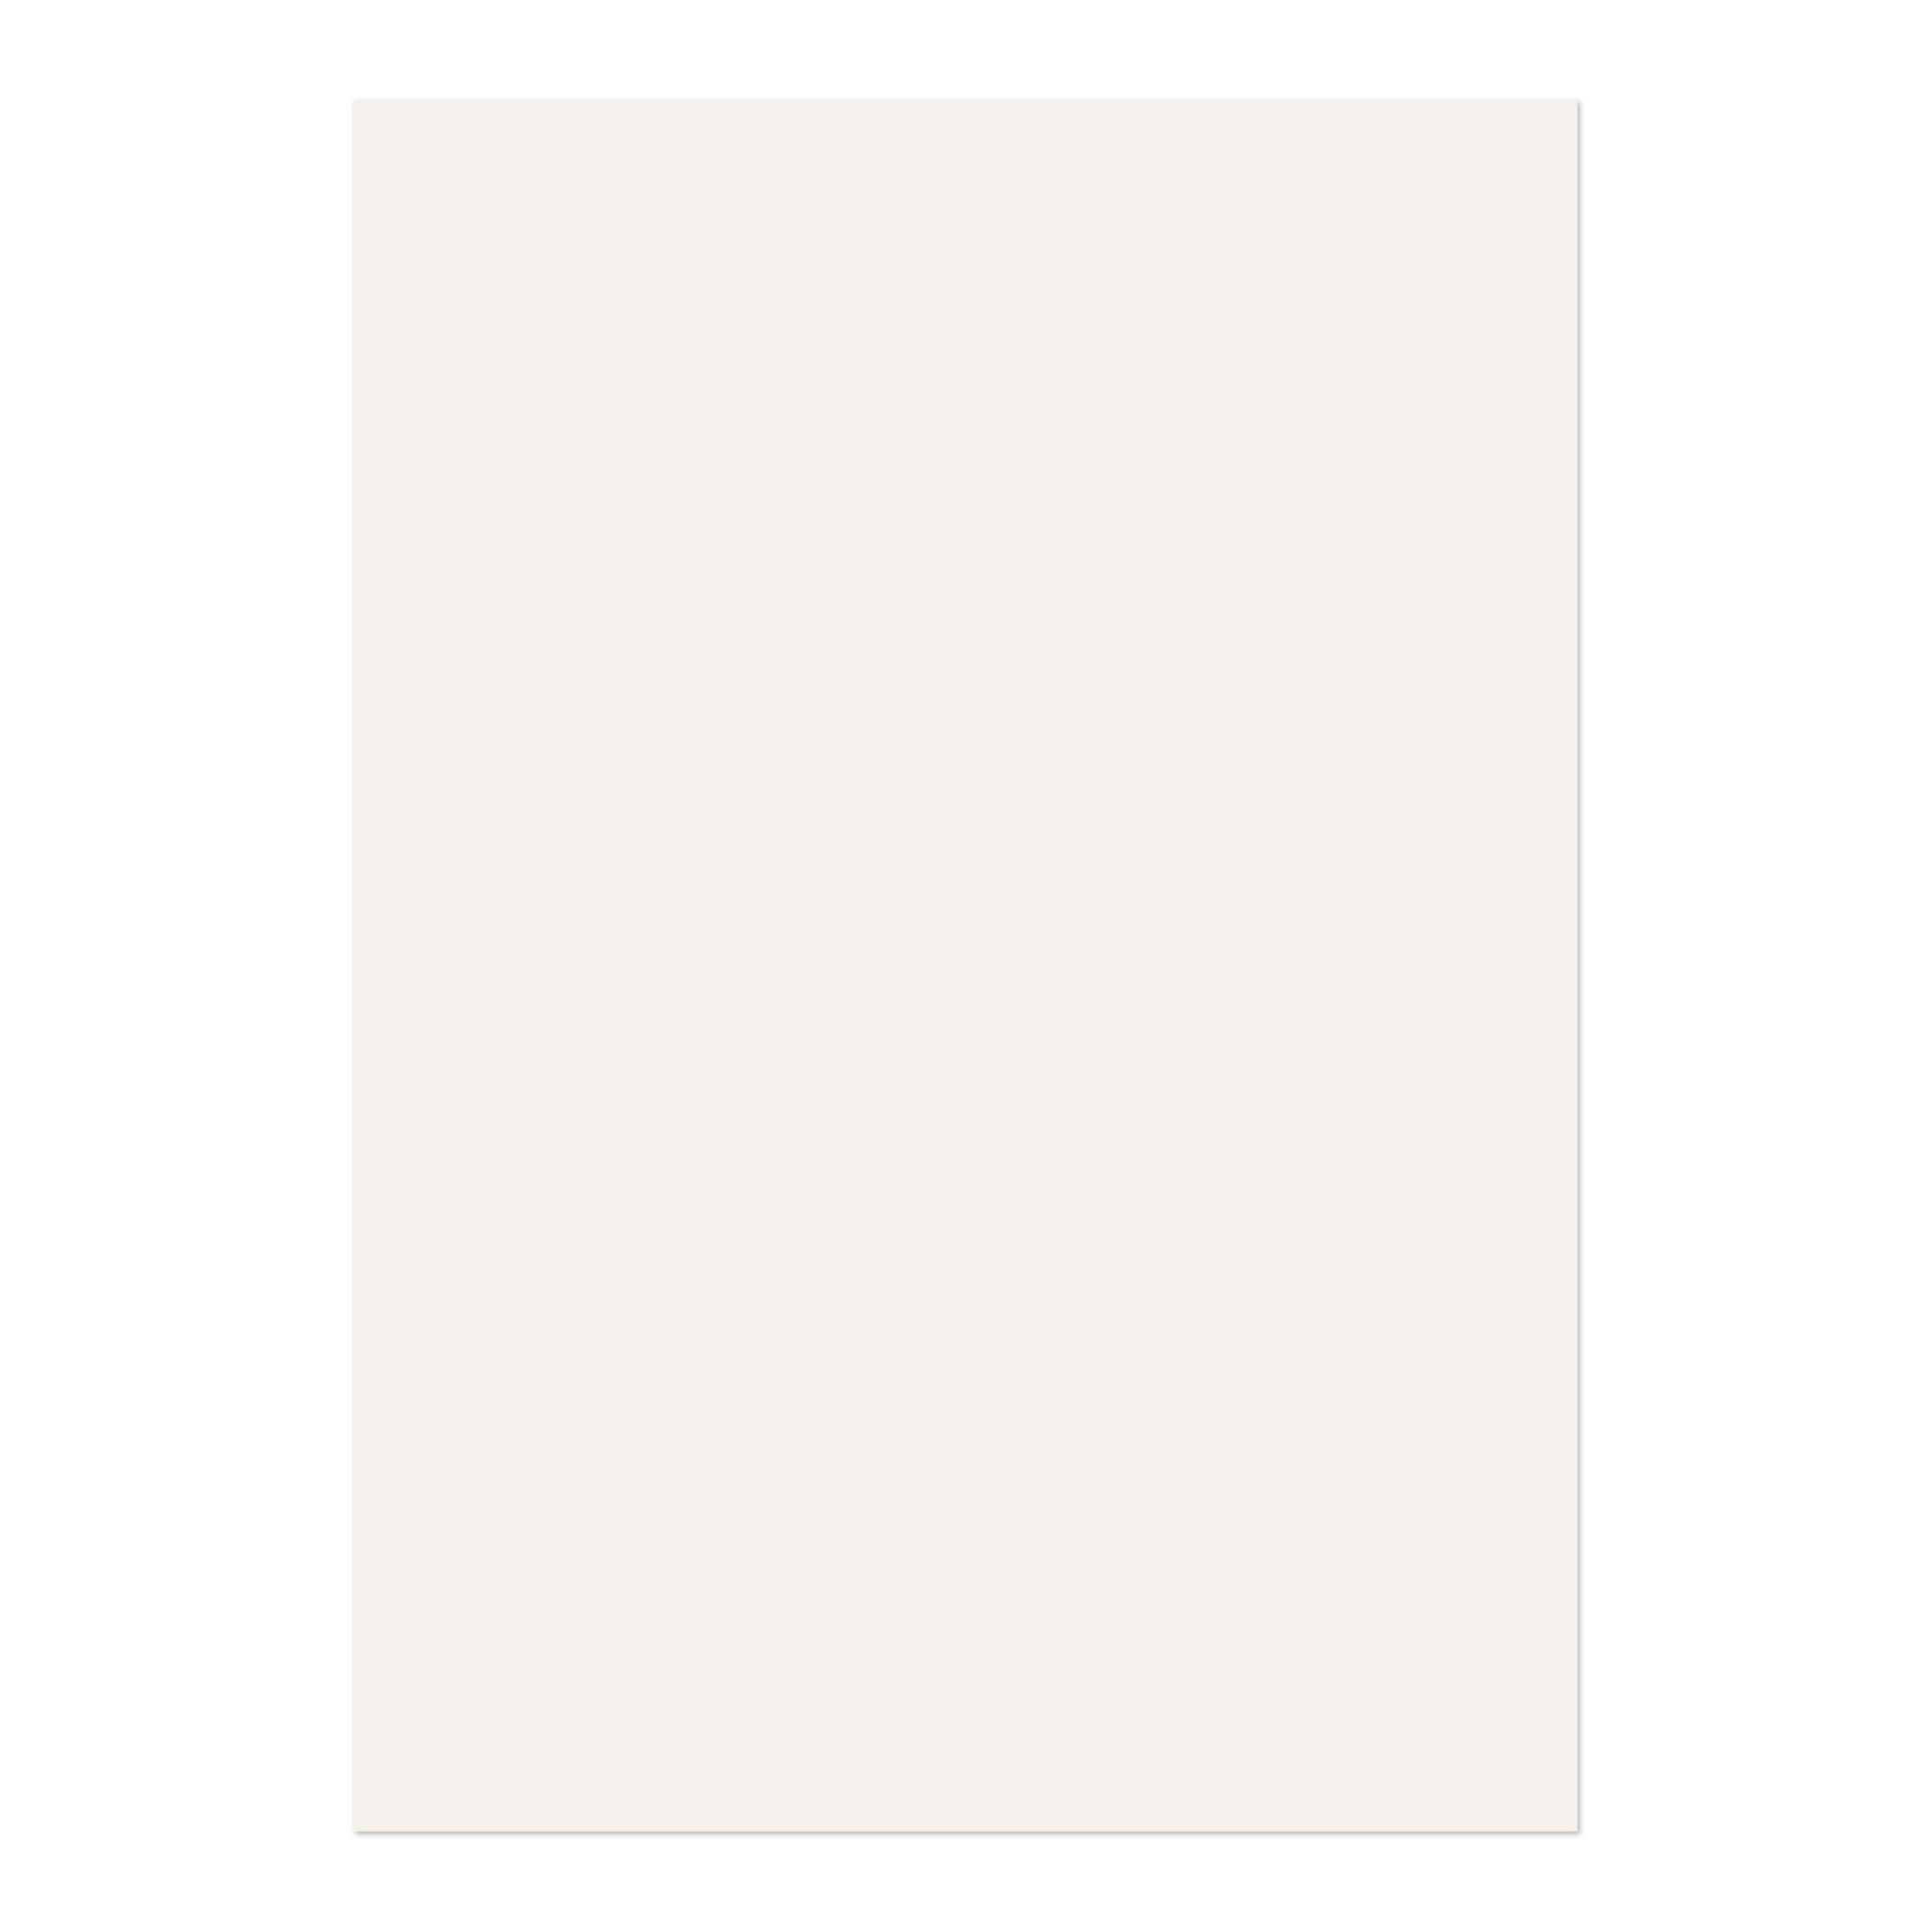 A4 Premium Business A4 120gsm Paper High White Laid PK50